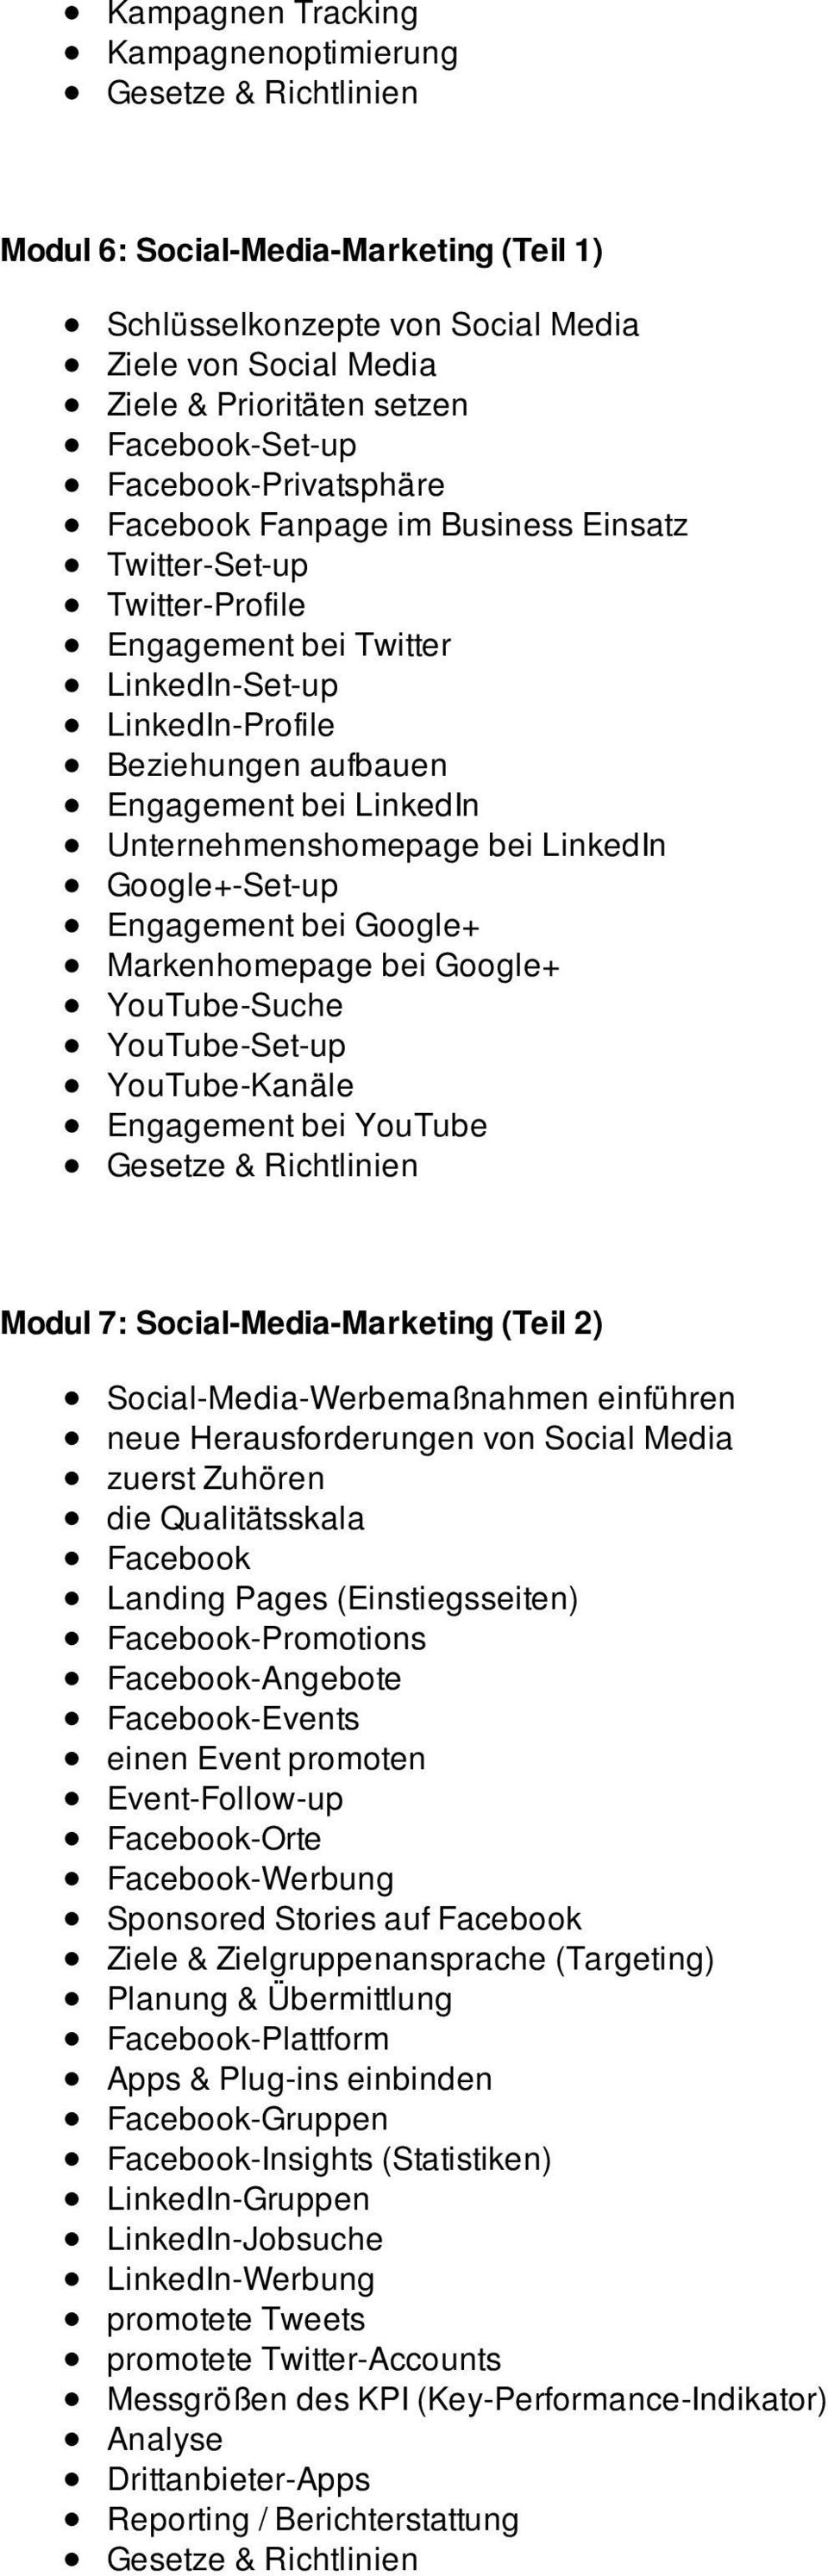 Unternehmenshomepage bei LinkedIn Google+-Set-up Engagement bei Google+ Markenhomepage bei Google+ YouTube-Suche YouTube-Set-up YouTube-Kanäle Engagement bei YouTube Modul 7: Social-Media-Marketing